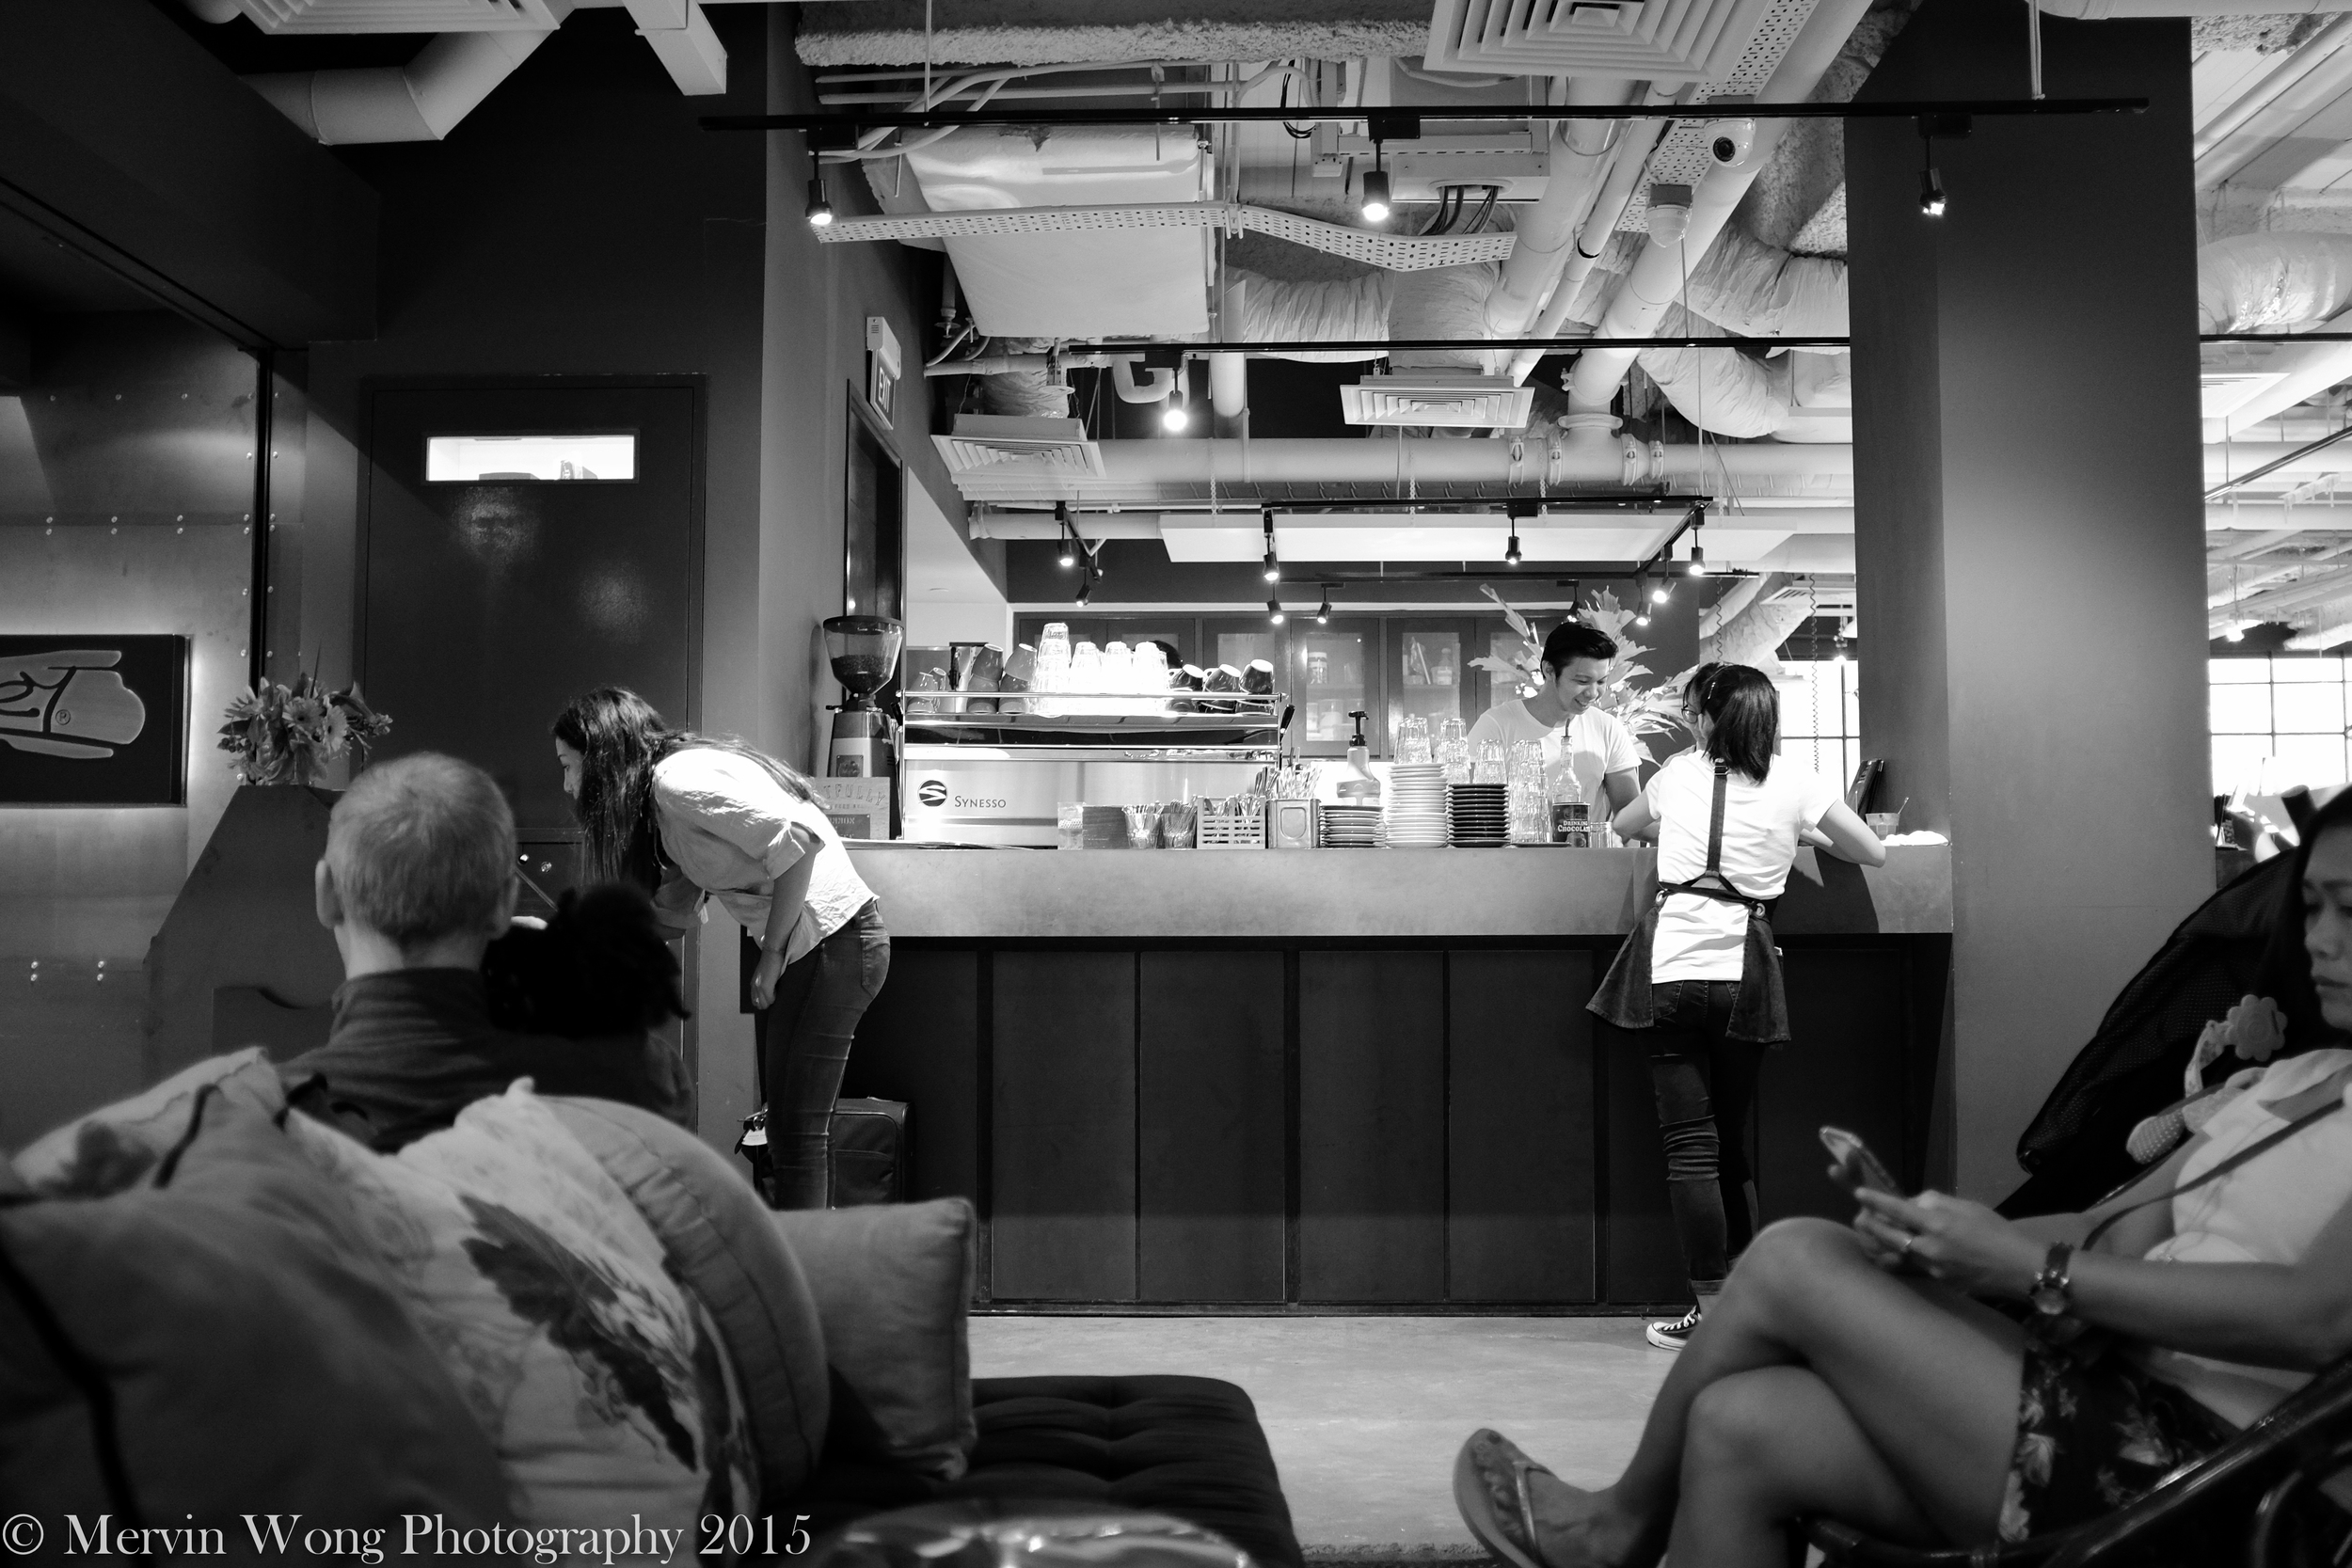 Mervin Wong Photography 2015 (36 of 52).jpg